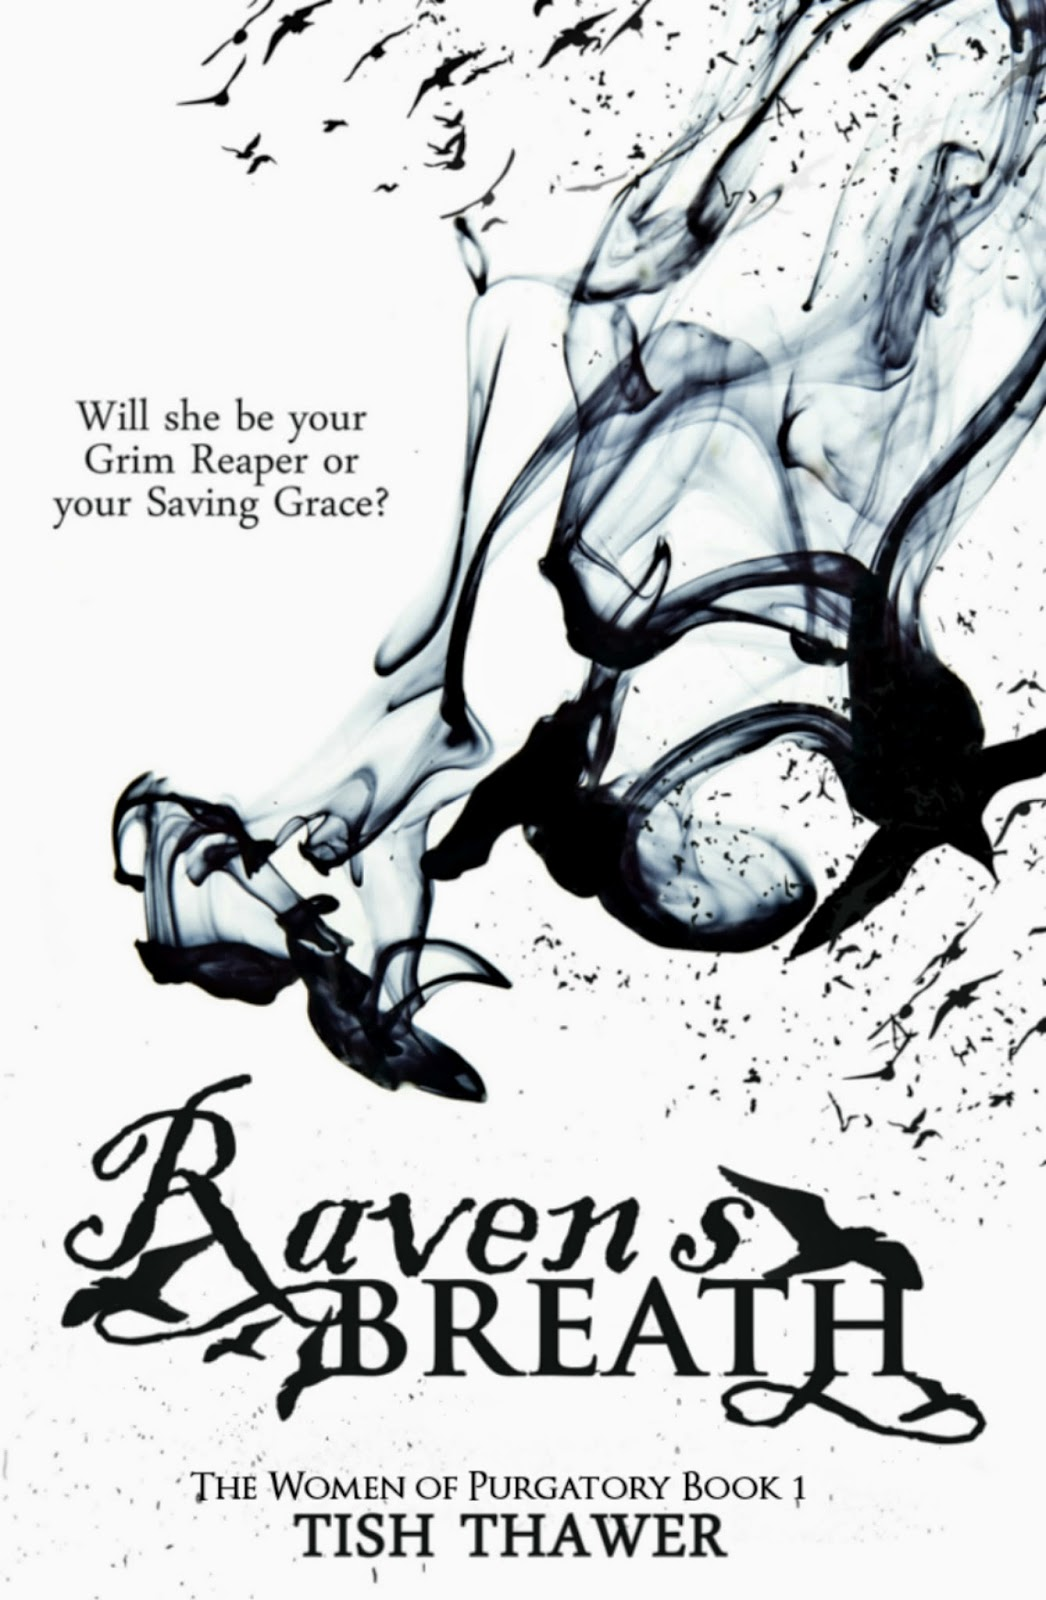 http://www.amazon.com/Ravens-Breath-Women-Purgatory-Thawer-ebook/dp/B00JOGMXZ6/ref=tmm_kin_swatch_0?_encoding=UTF8&sr=8-1&qid=1404661586